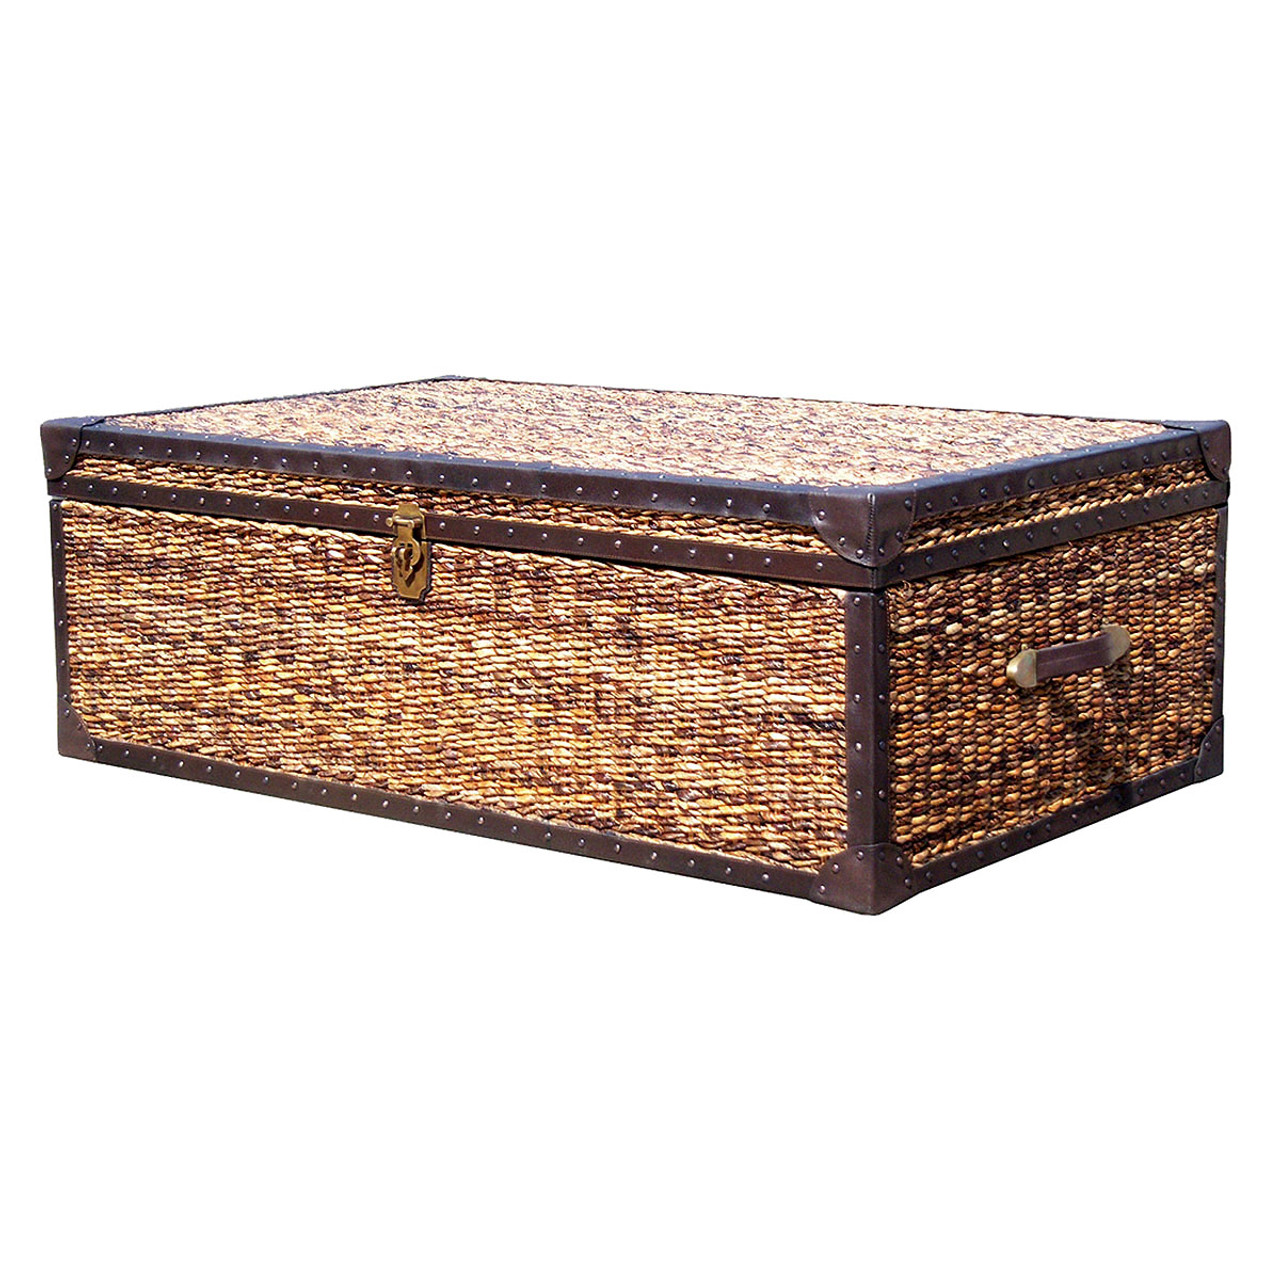 Lanai Trunk Coffee Table X Wicker Banana Leaf Woven Trunk - Banana leaf coffee table